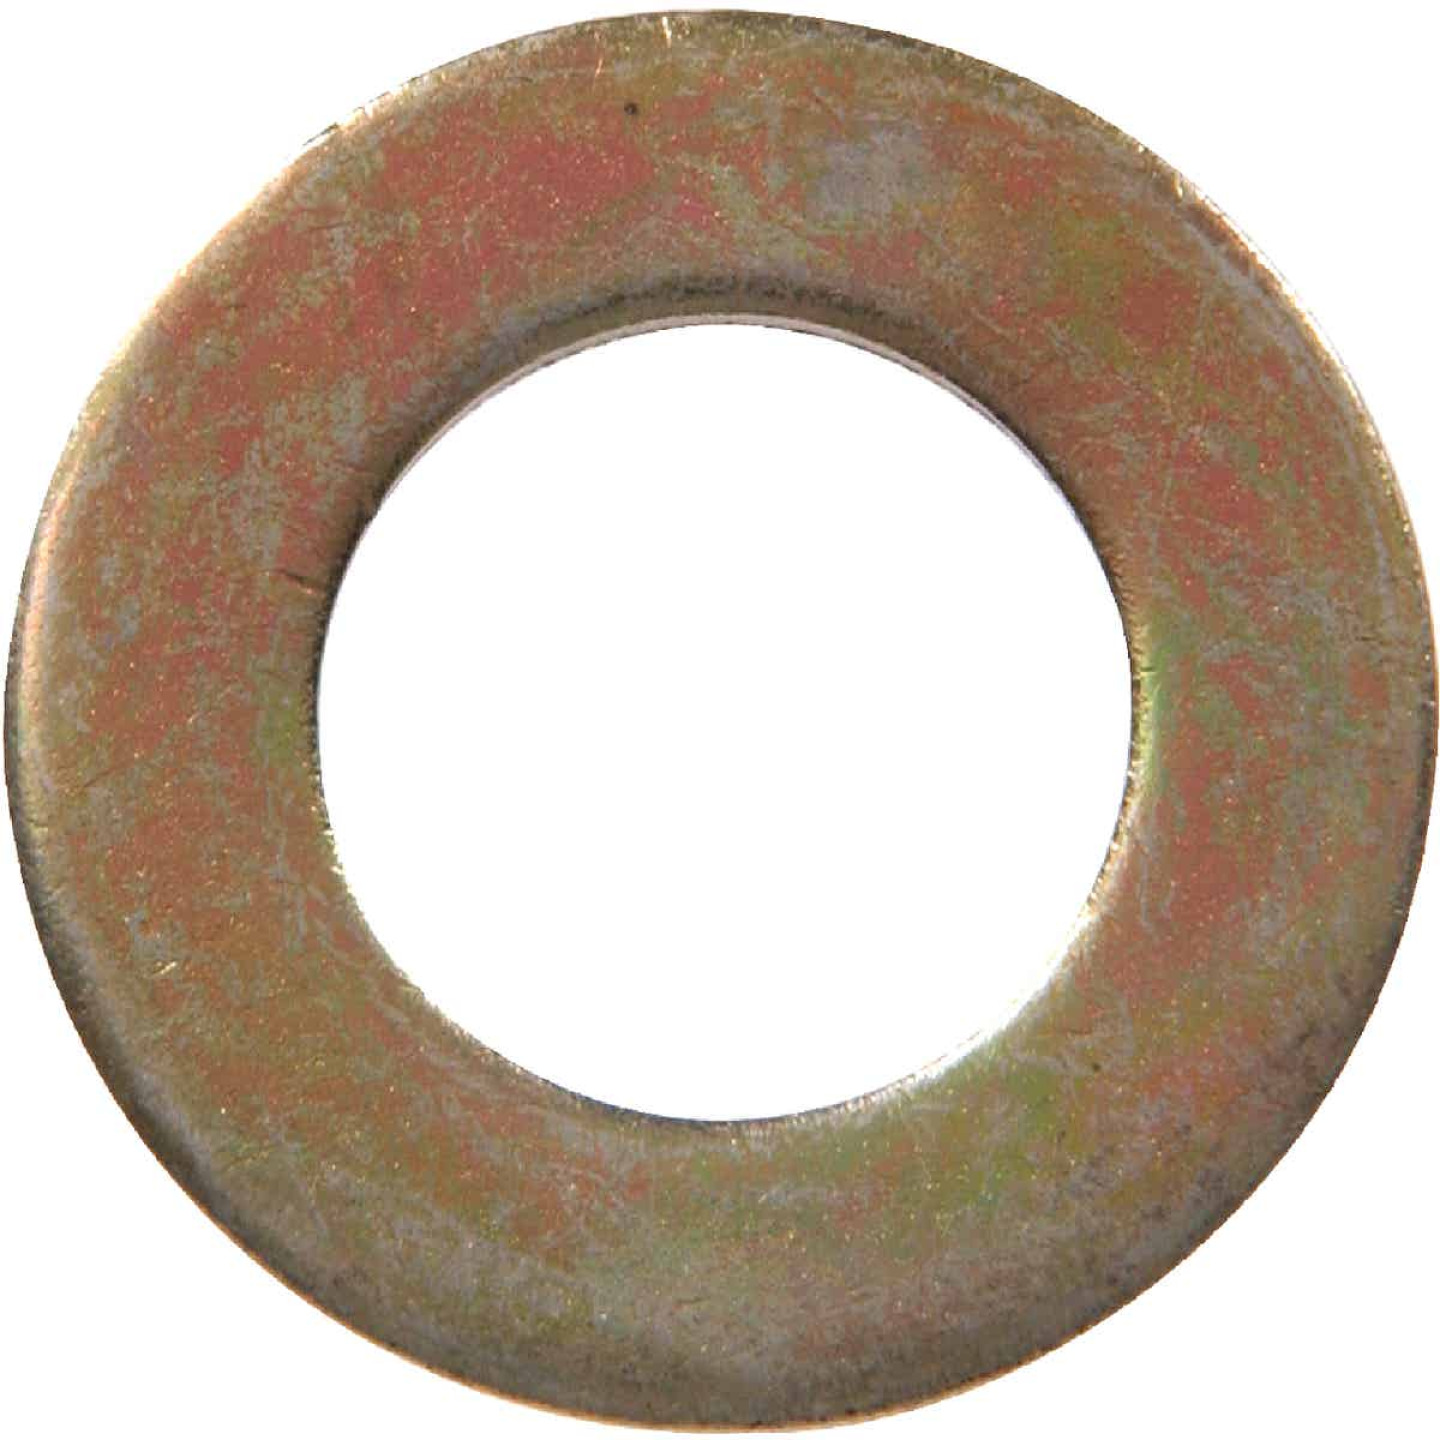 Hillman 1/4 In. SAE Hardened Steel Yellow Dichromate Flat Washer (100 Ct.) Image 1